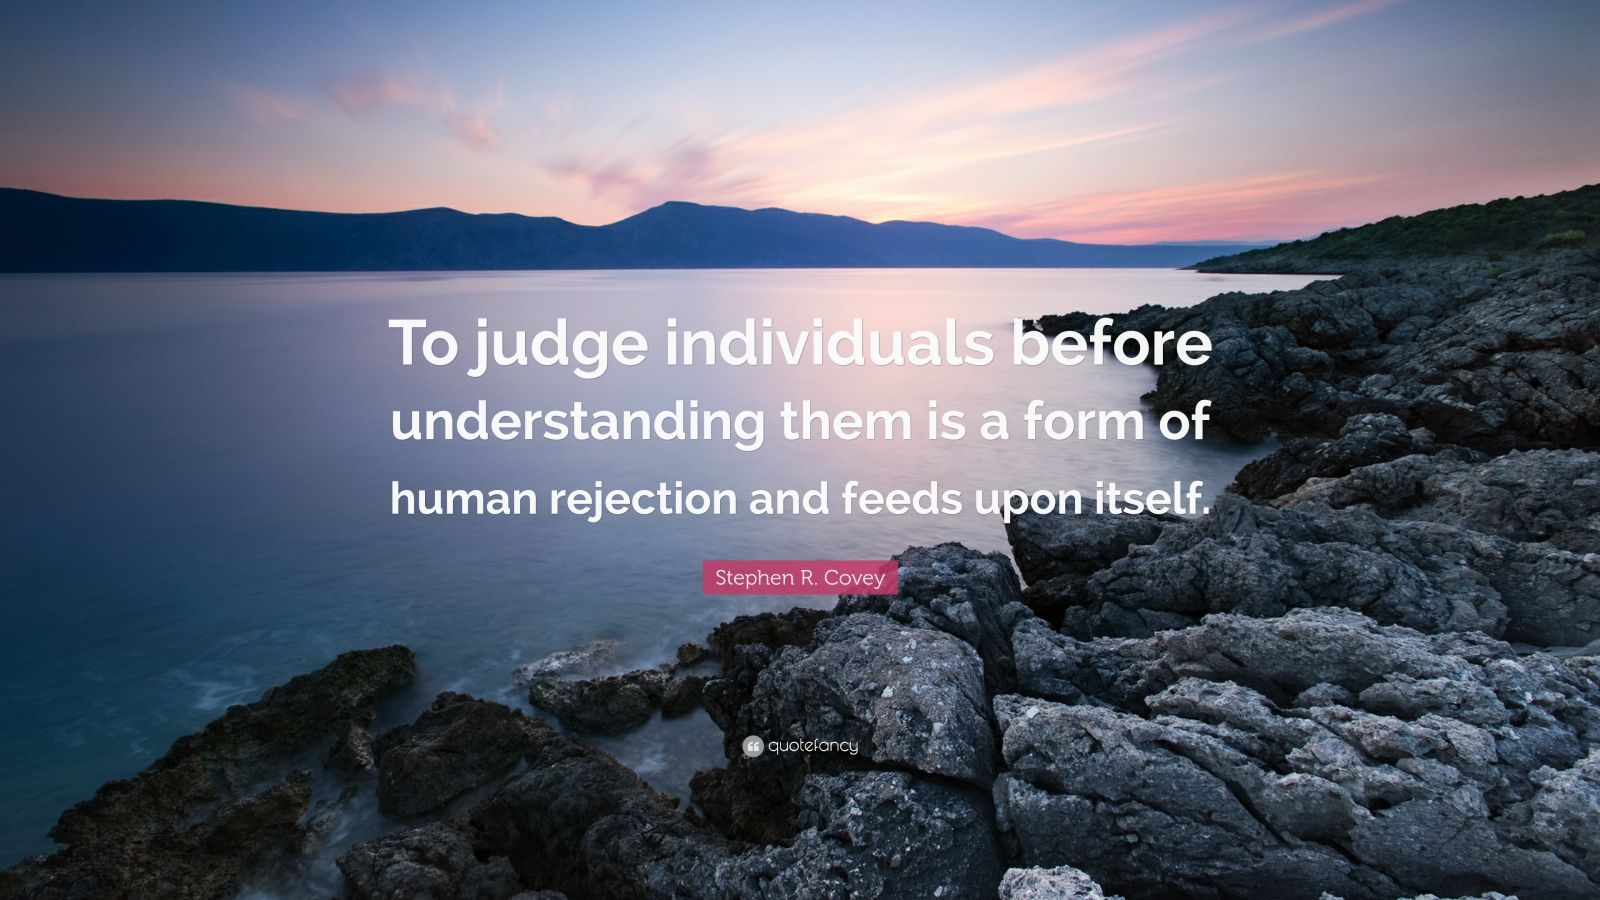 """Stephen R. Covey Quote: """"To judge individuals before understanding them is a form of human rejection and feeds upon itself."""""""